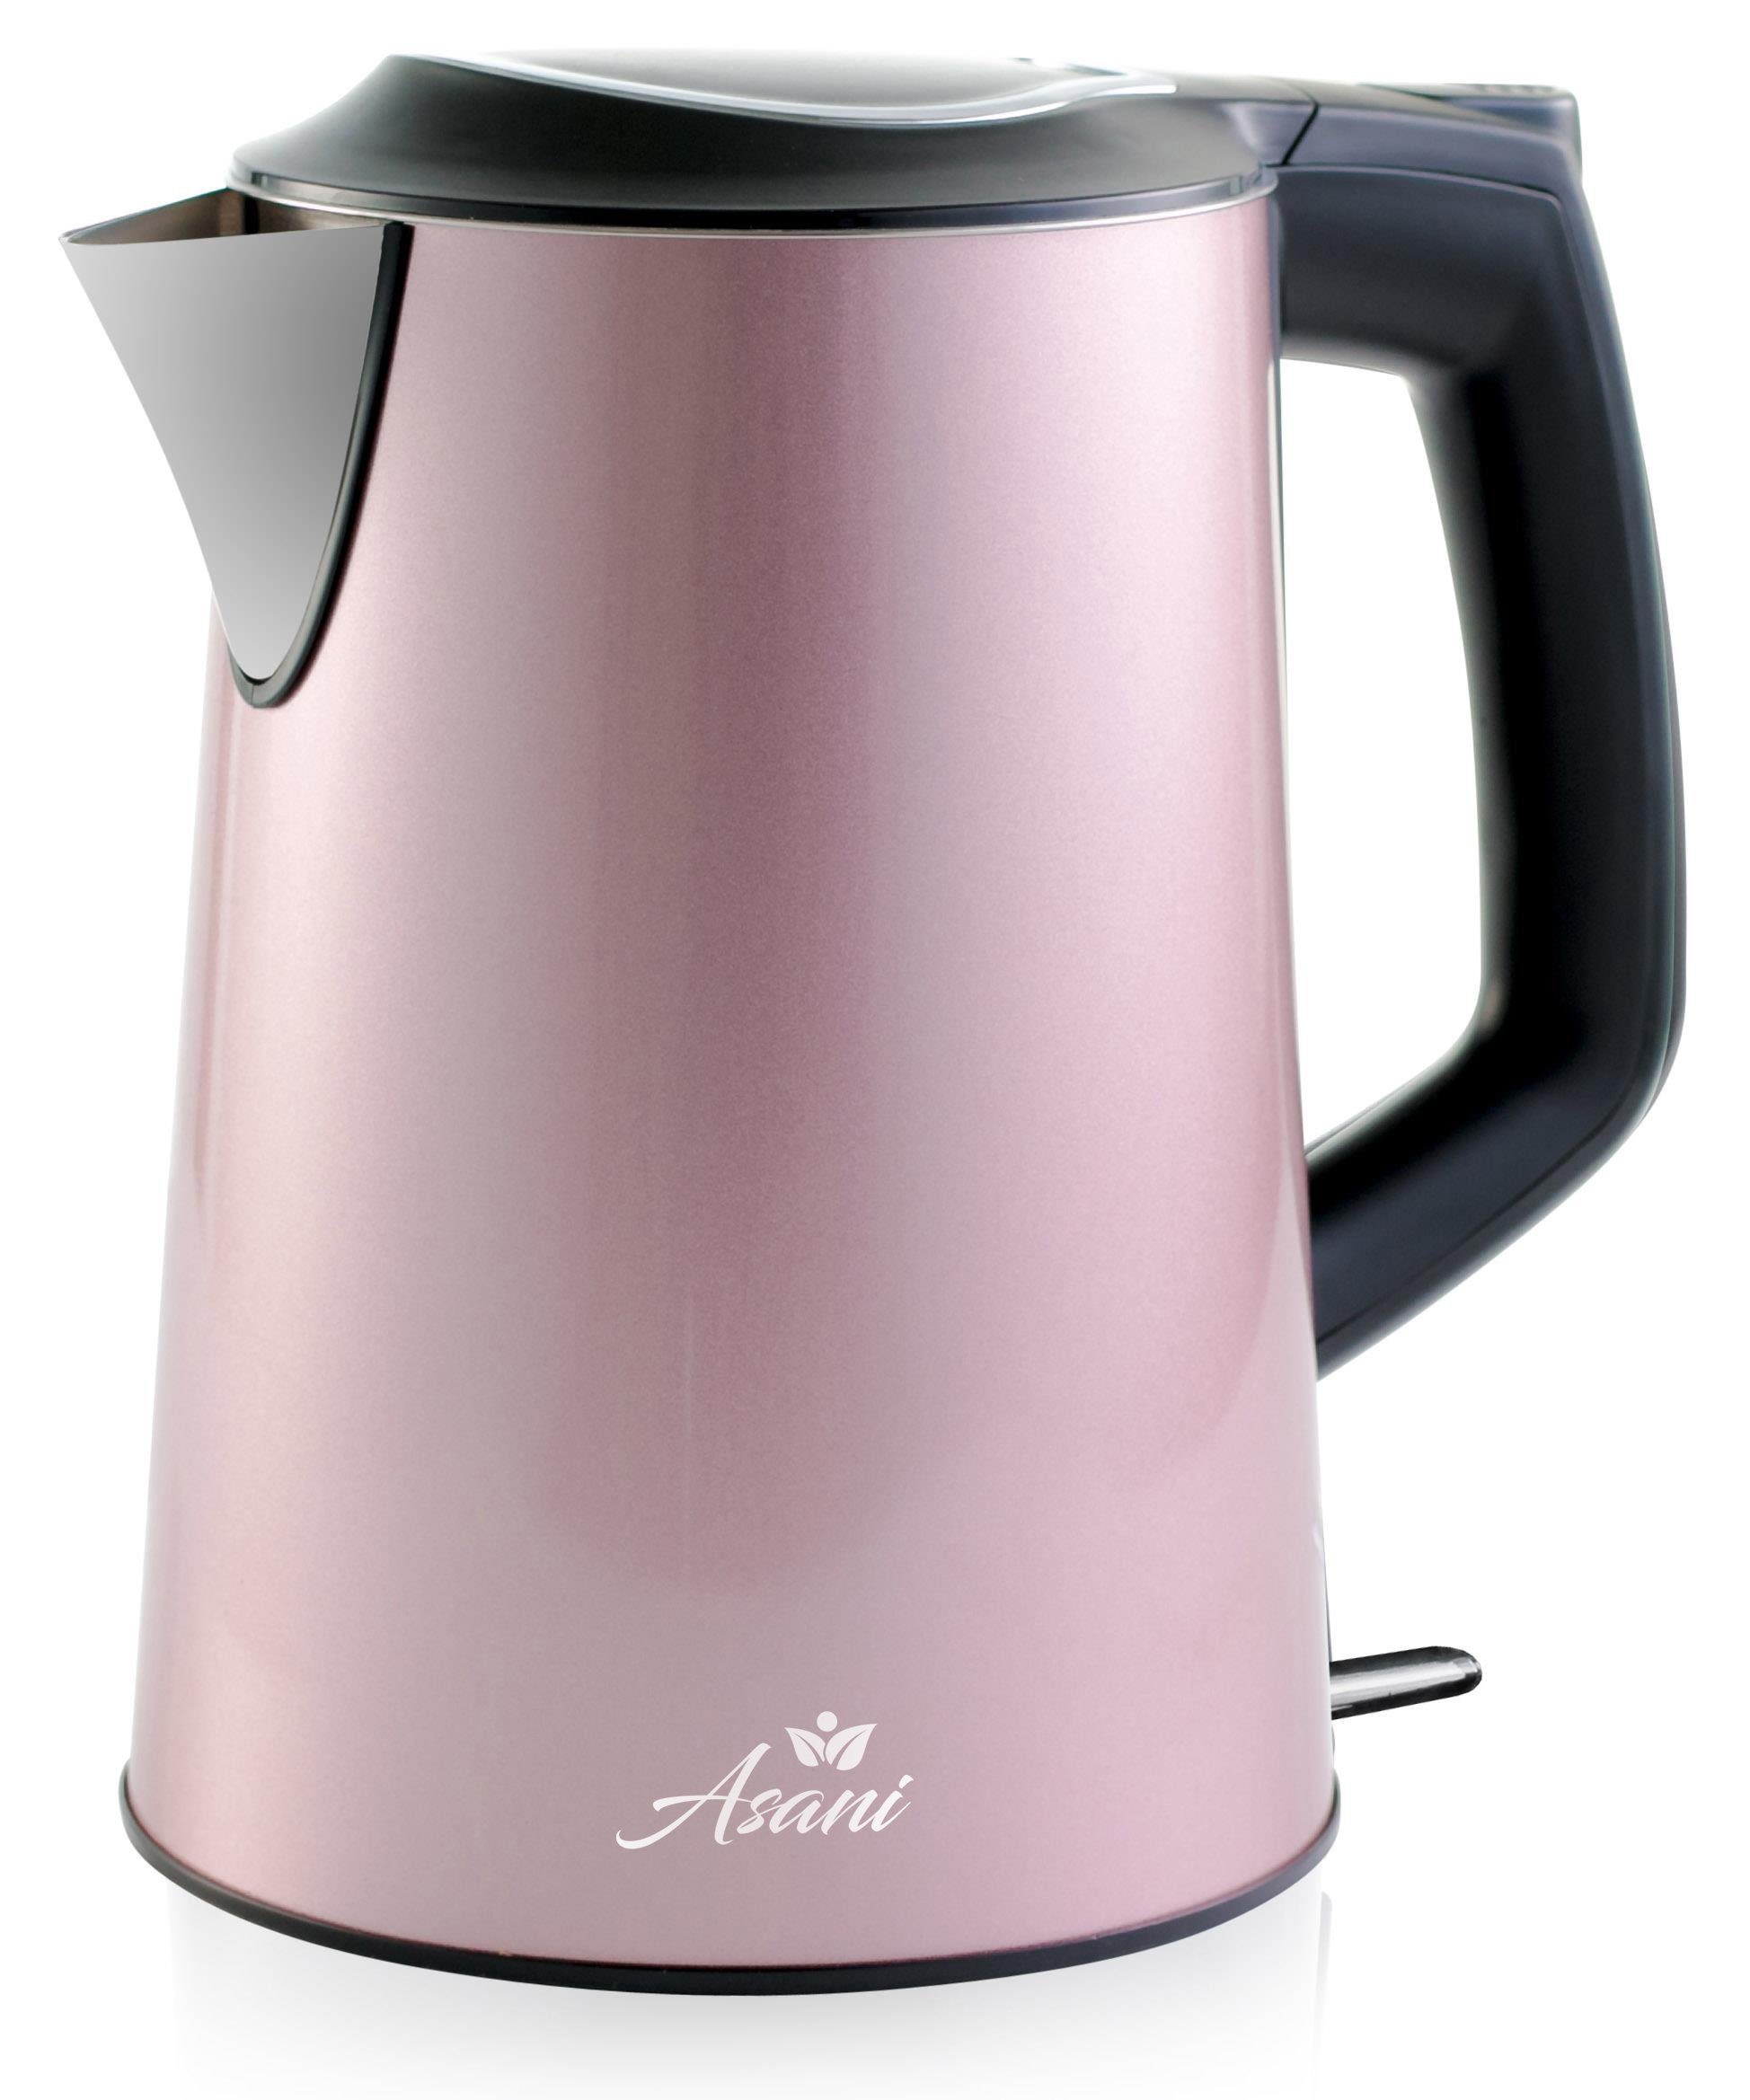 Double Wall Safe Touch Electric Kettle | Stainless Steel with 100% Plastic-Free Interior | Cordless Electronic Hot Water Heater Pot with Cool Touch, Boil Dry Protection & More (1.9 Quart/1.8L) (Pink)